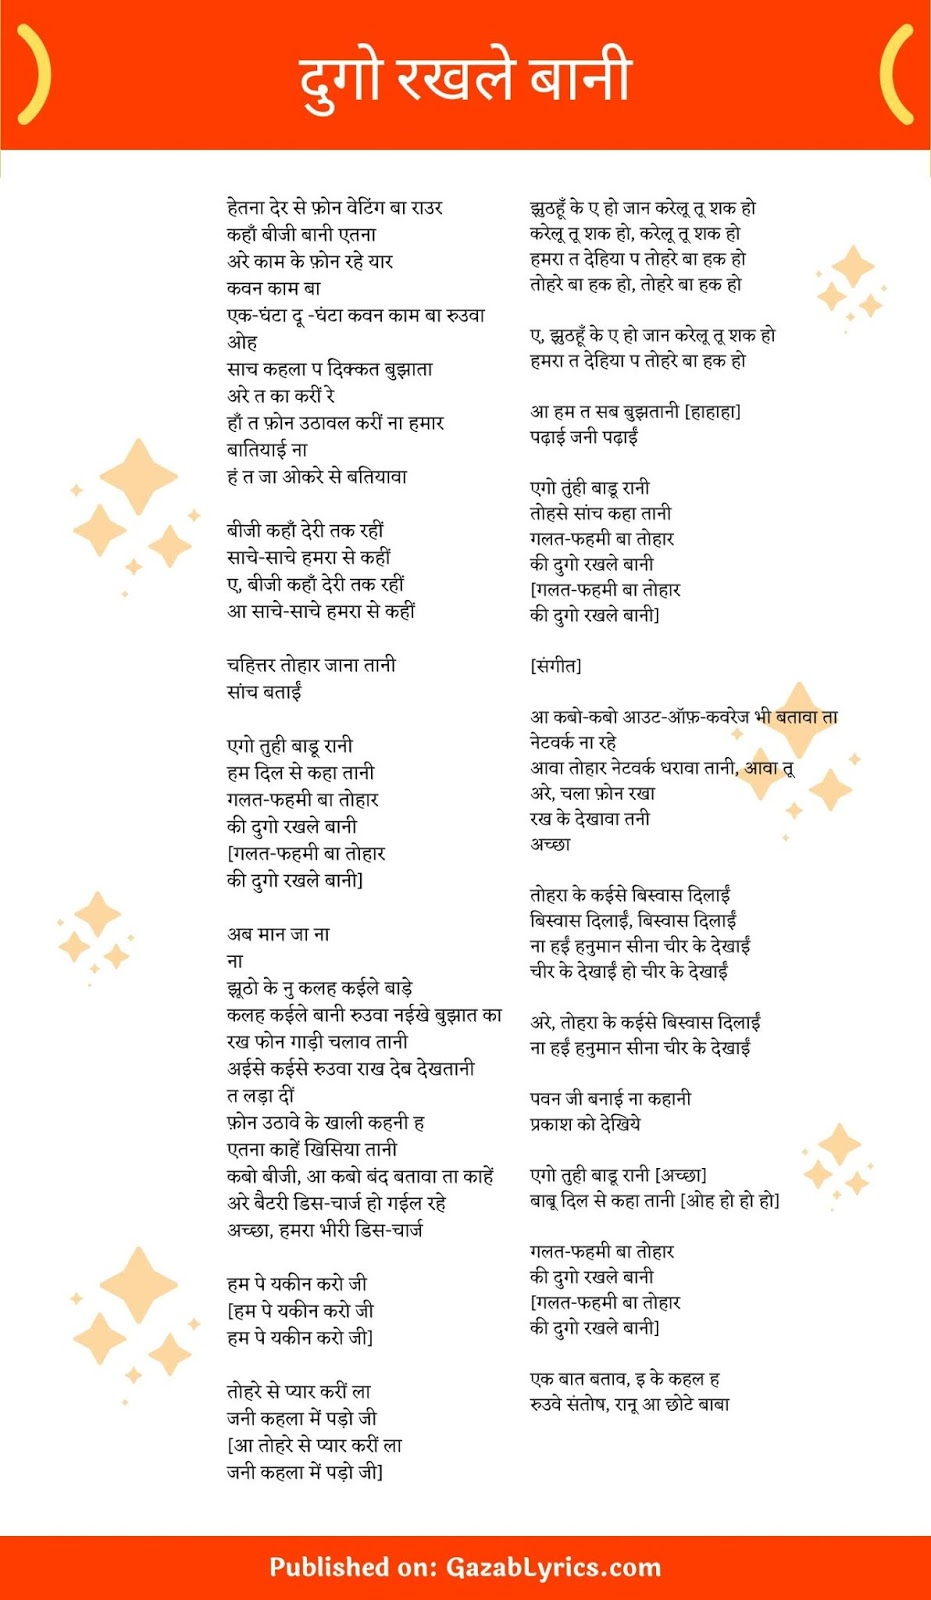 Dugo Rakhale Bani song lyrics image